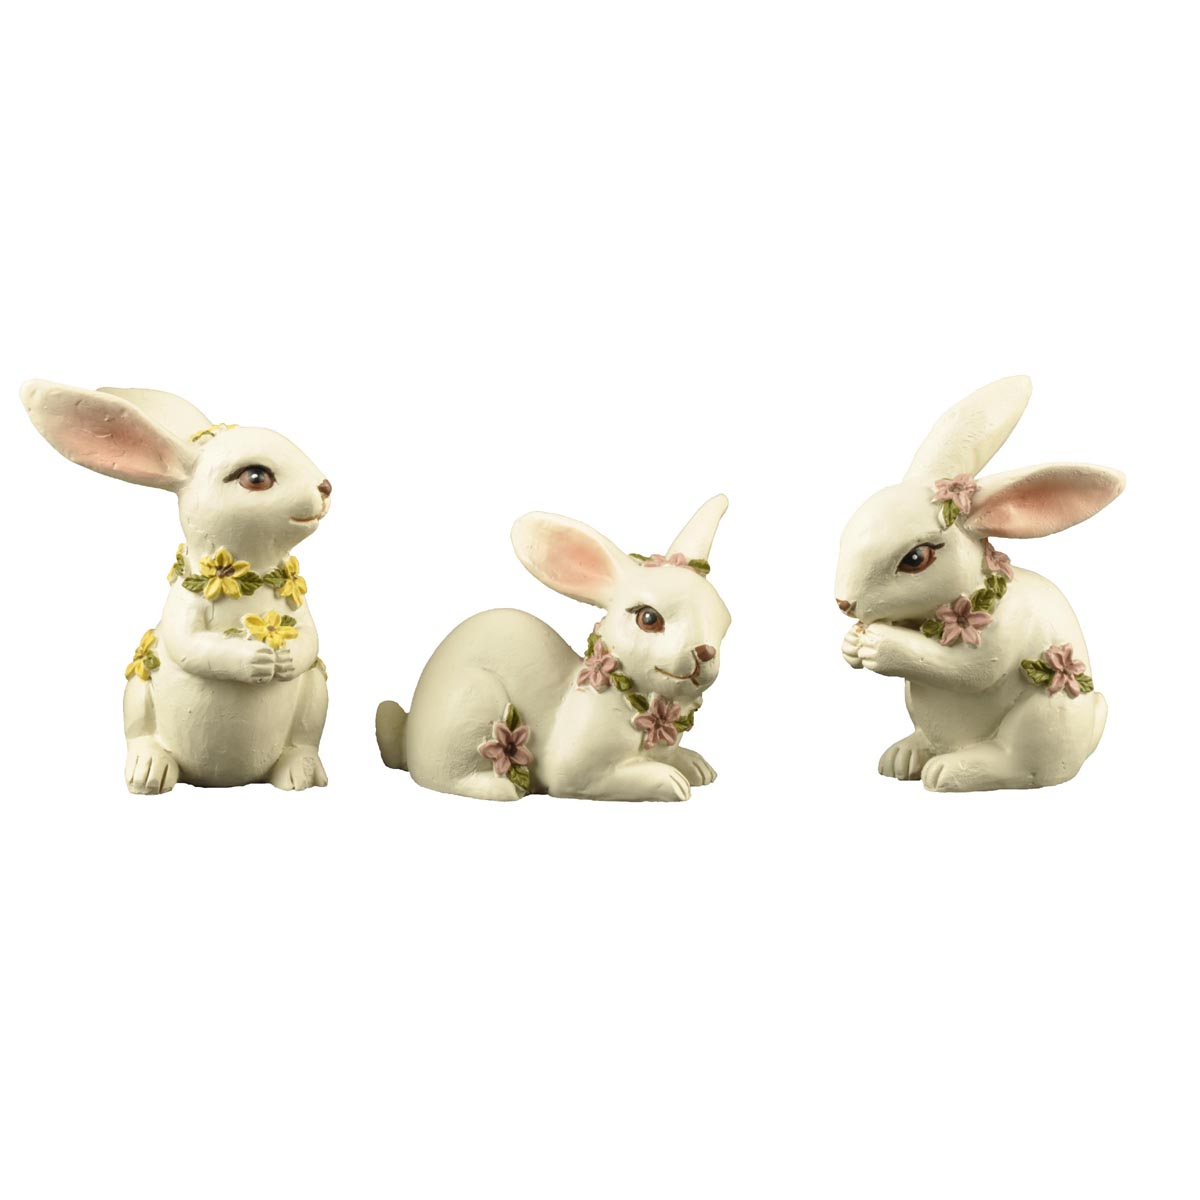 Ennas best quality easter bunny decorations handmade crafts micro landscape-1